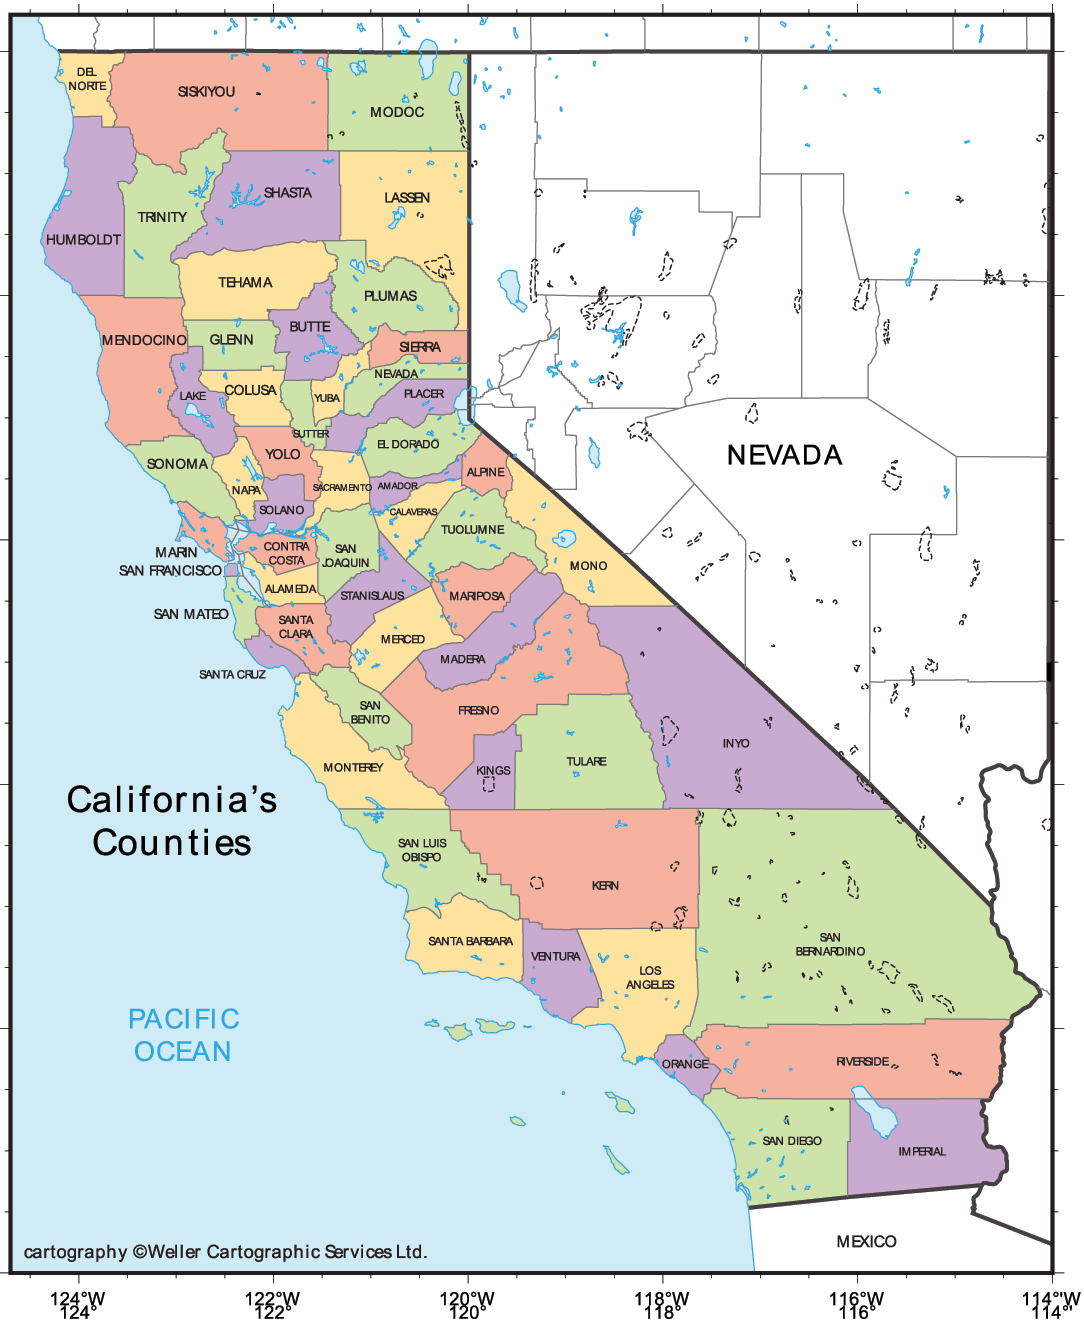 Map Of Cities Of California California State Map California City And - Google Maps California Cities